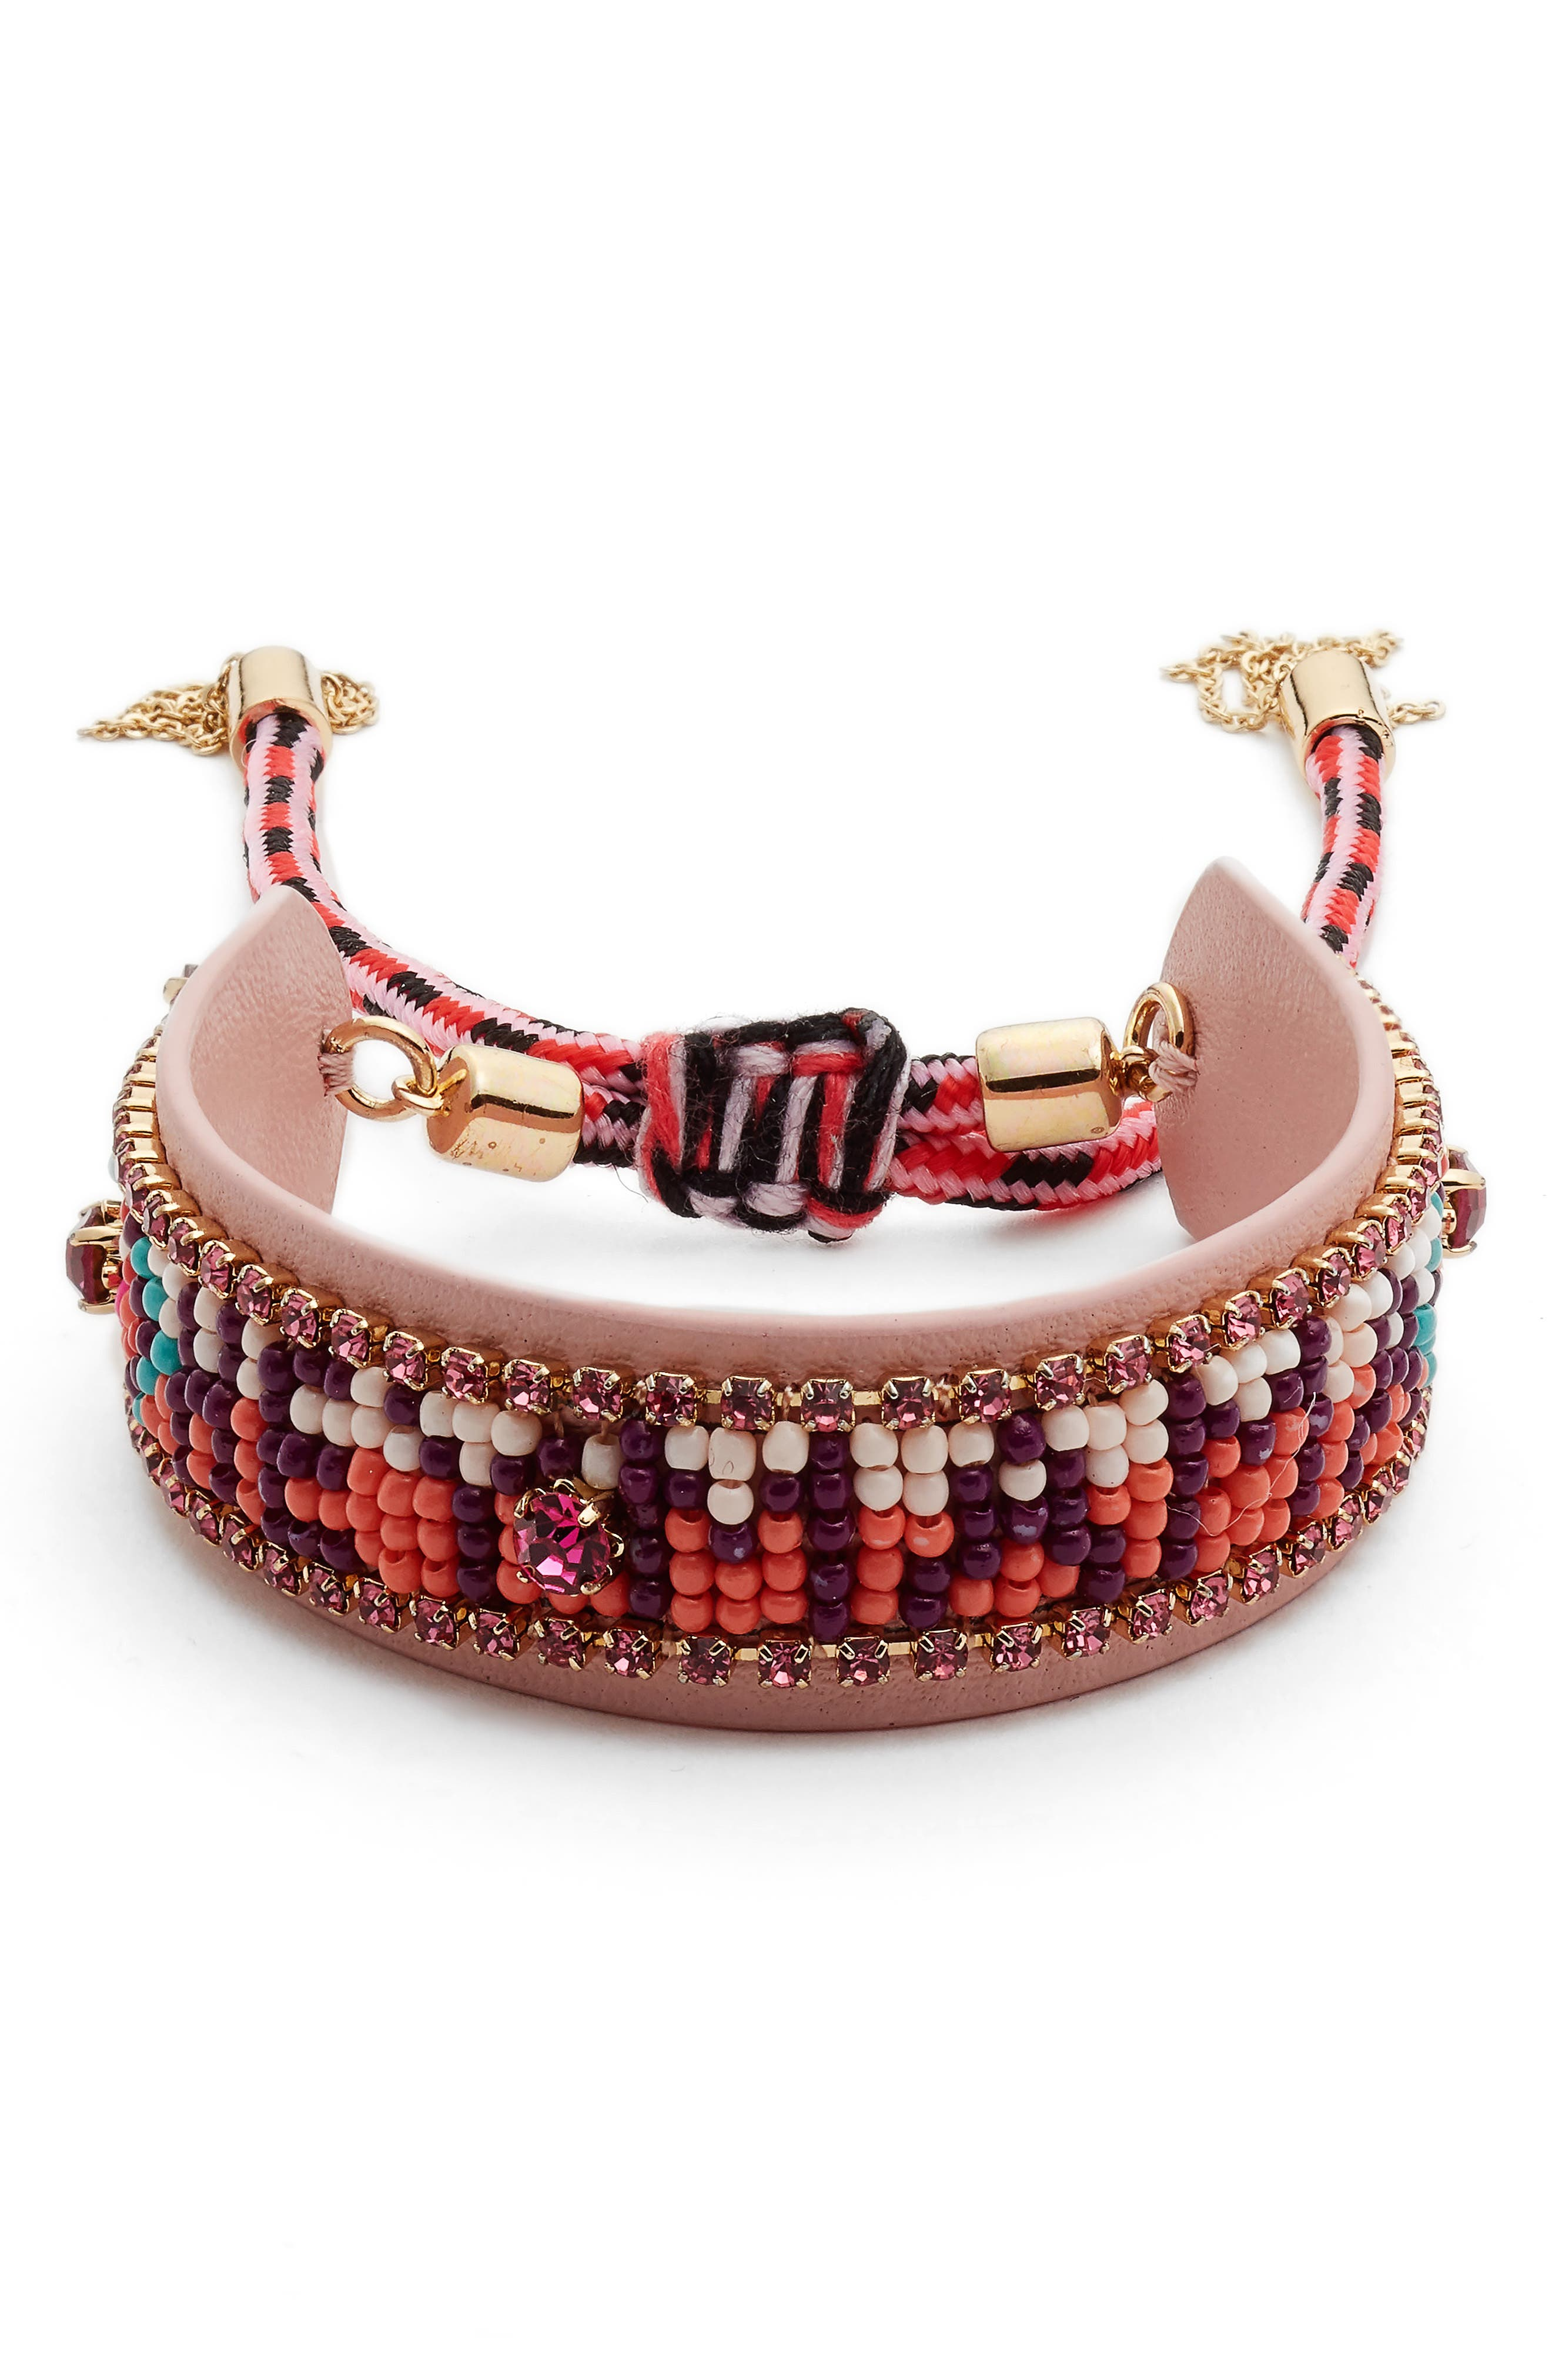 Beaded Friendship Bracelet,                         Main,                         color, Pink/ Orange